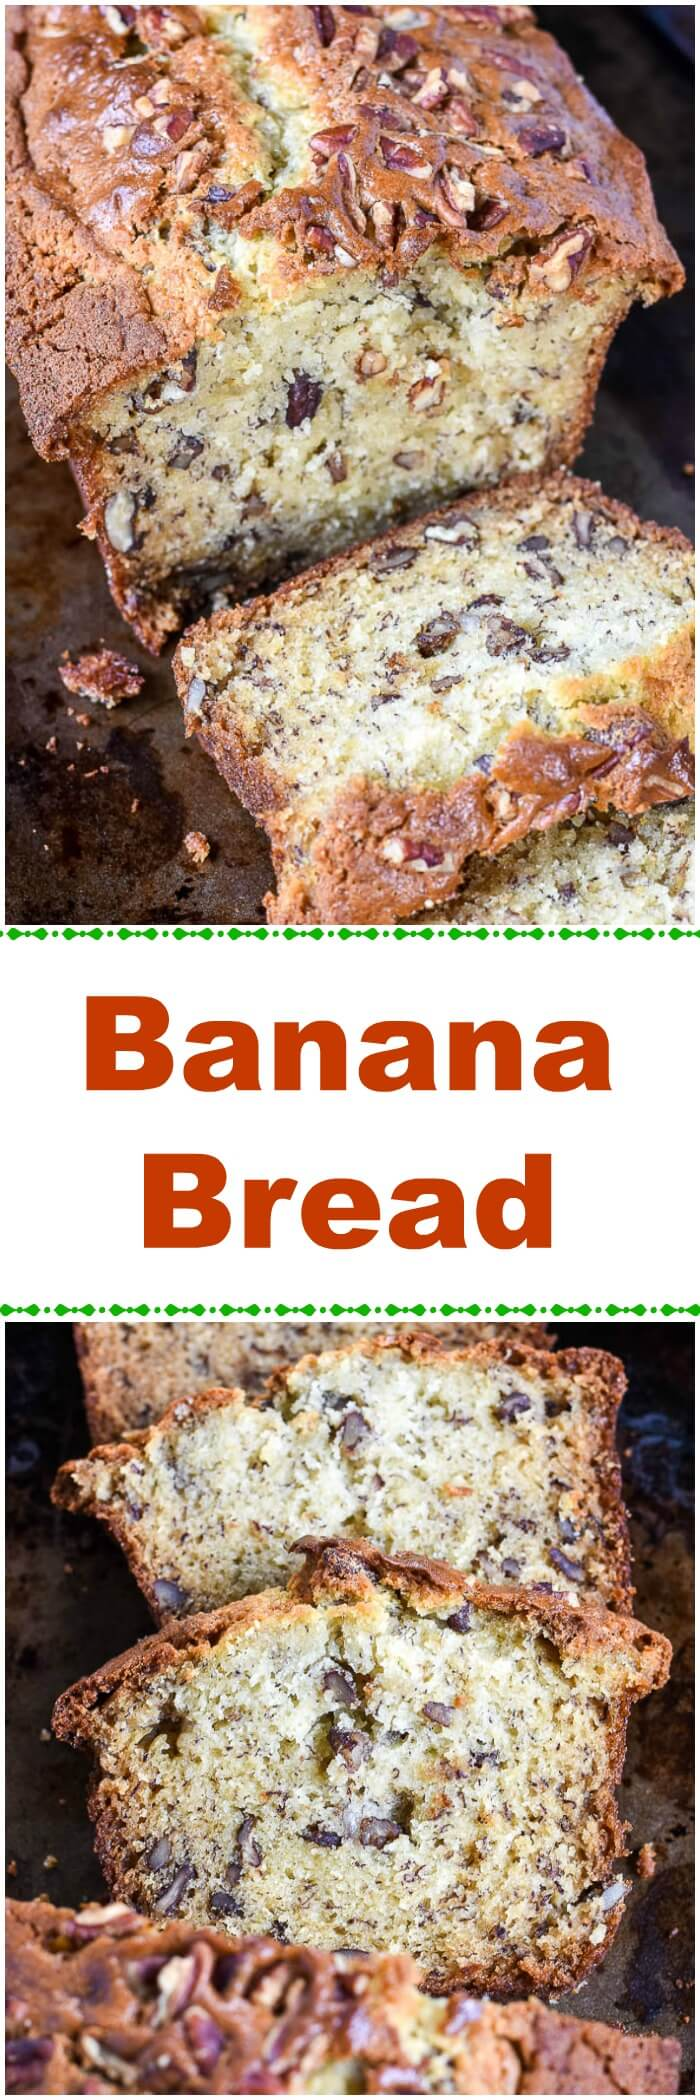 This Super Moist Banana Bread Recipe Makes The Best Banana Bread You Will Ever Try The Sour C Banana Bread Recipe Moist Banana Bread Recipes Best Banana Bread